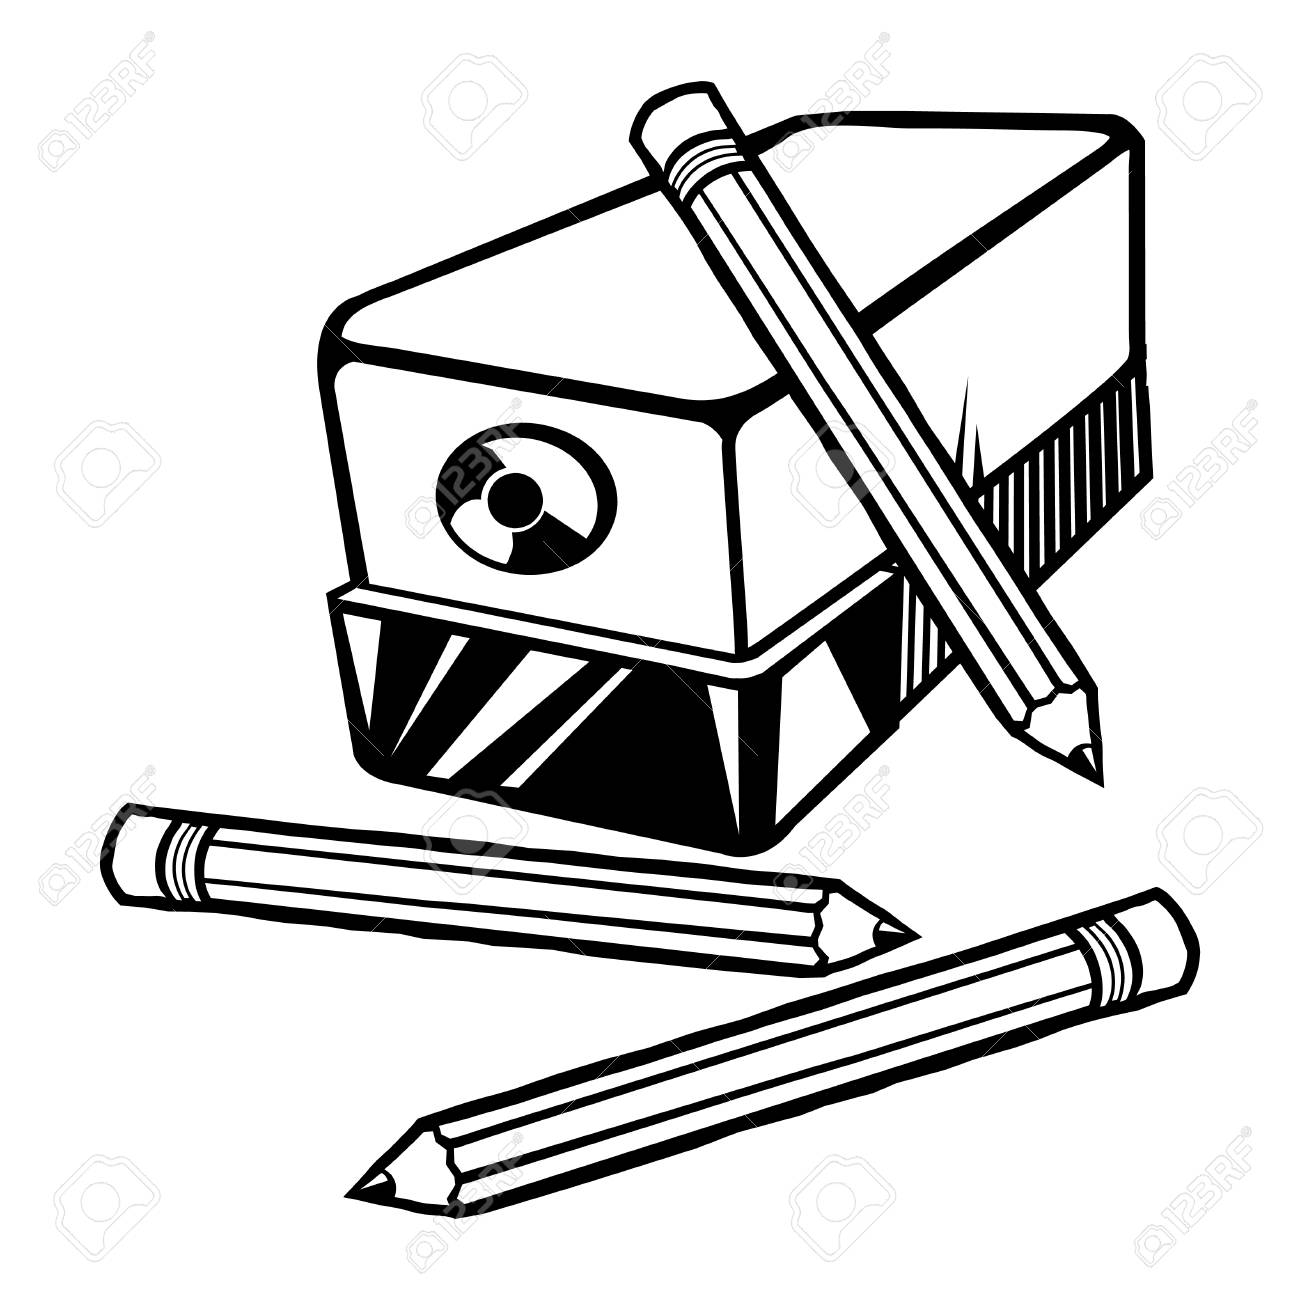 pencil sharpener vector icon royalty free cliparts, vectors, and